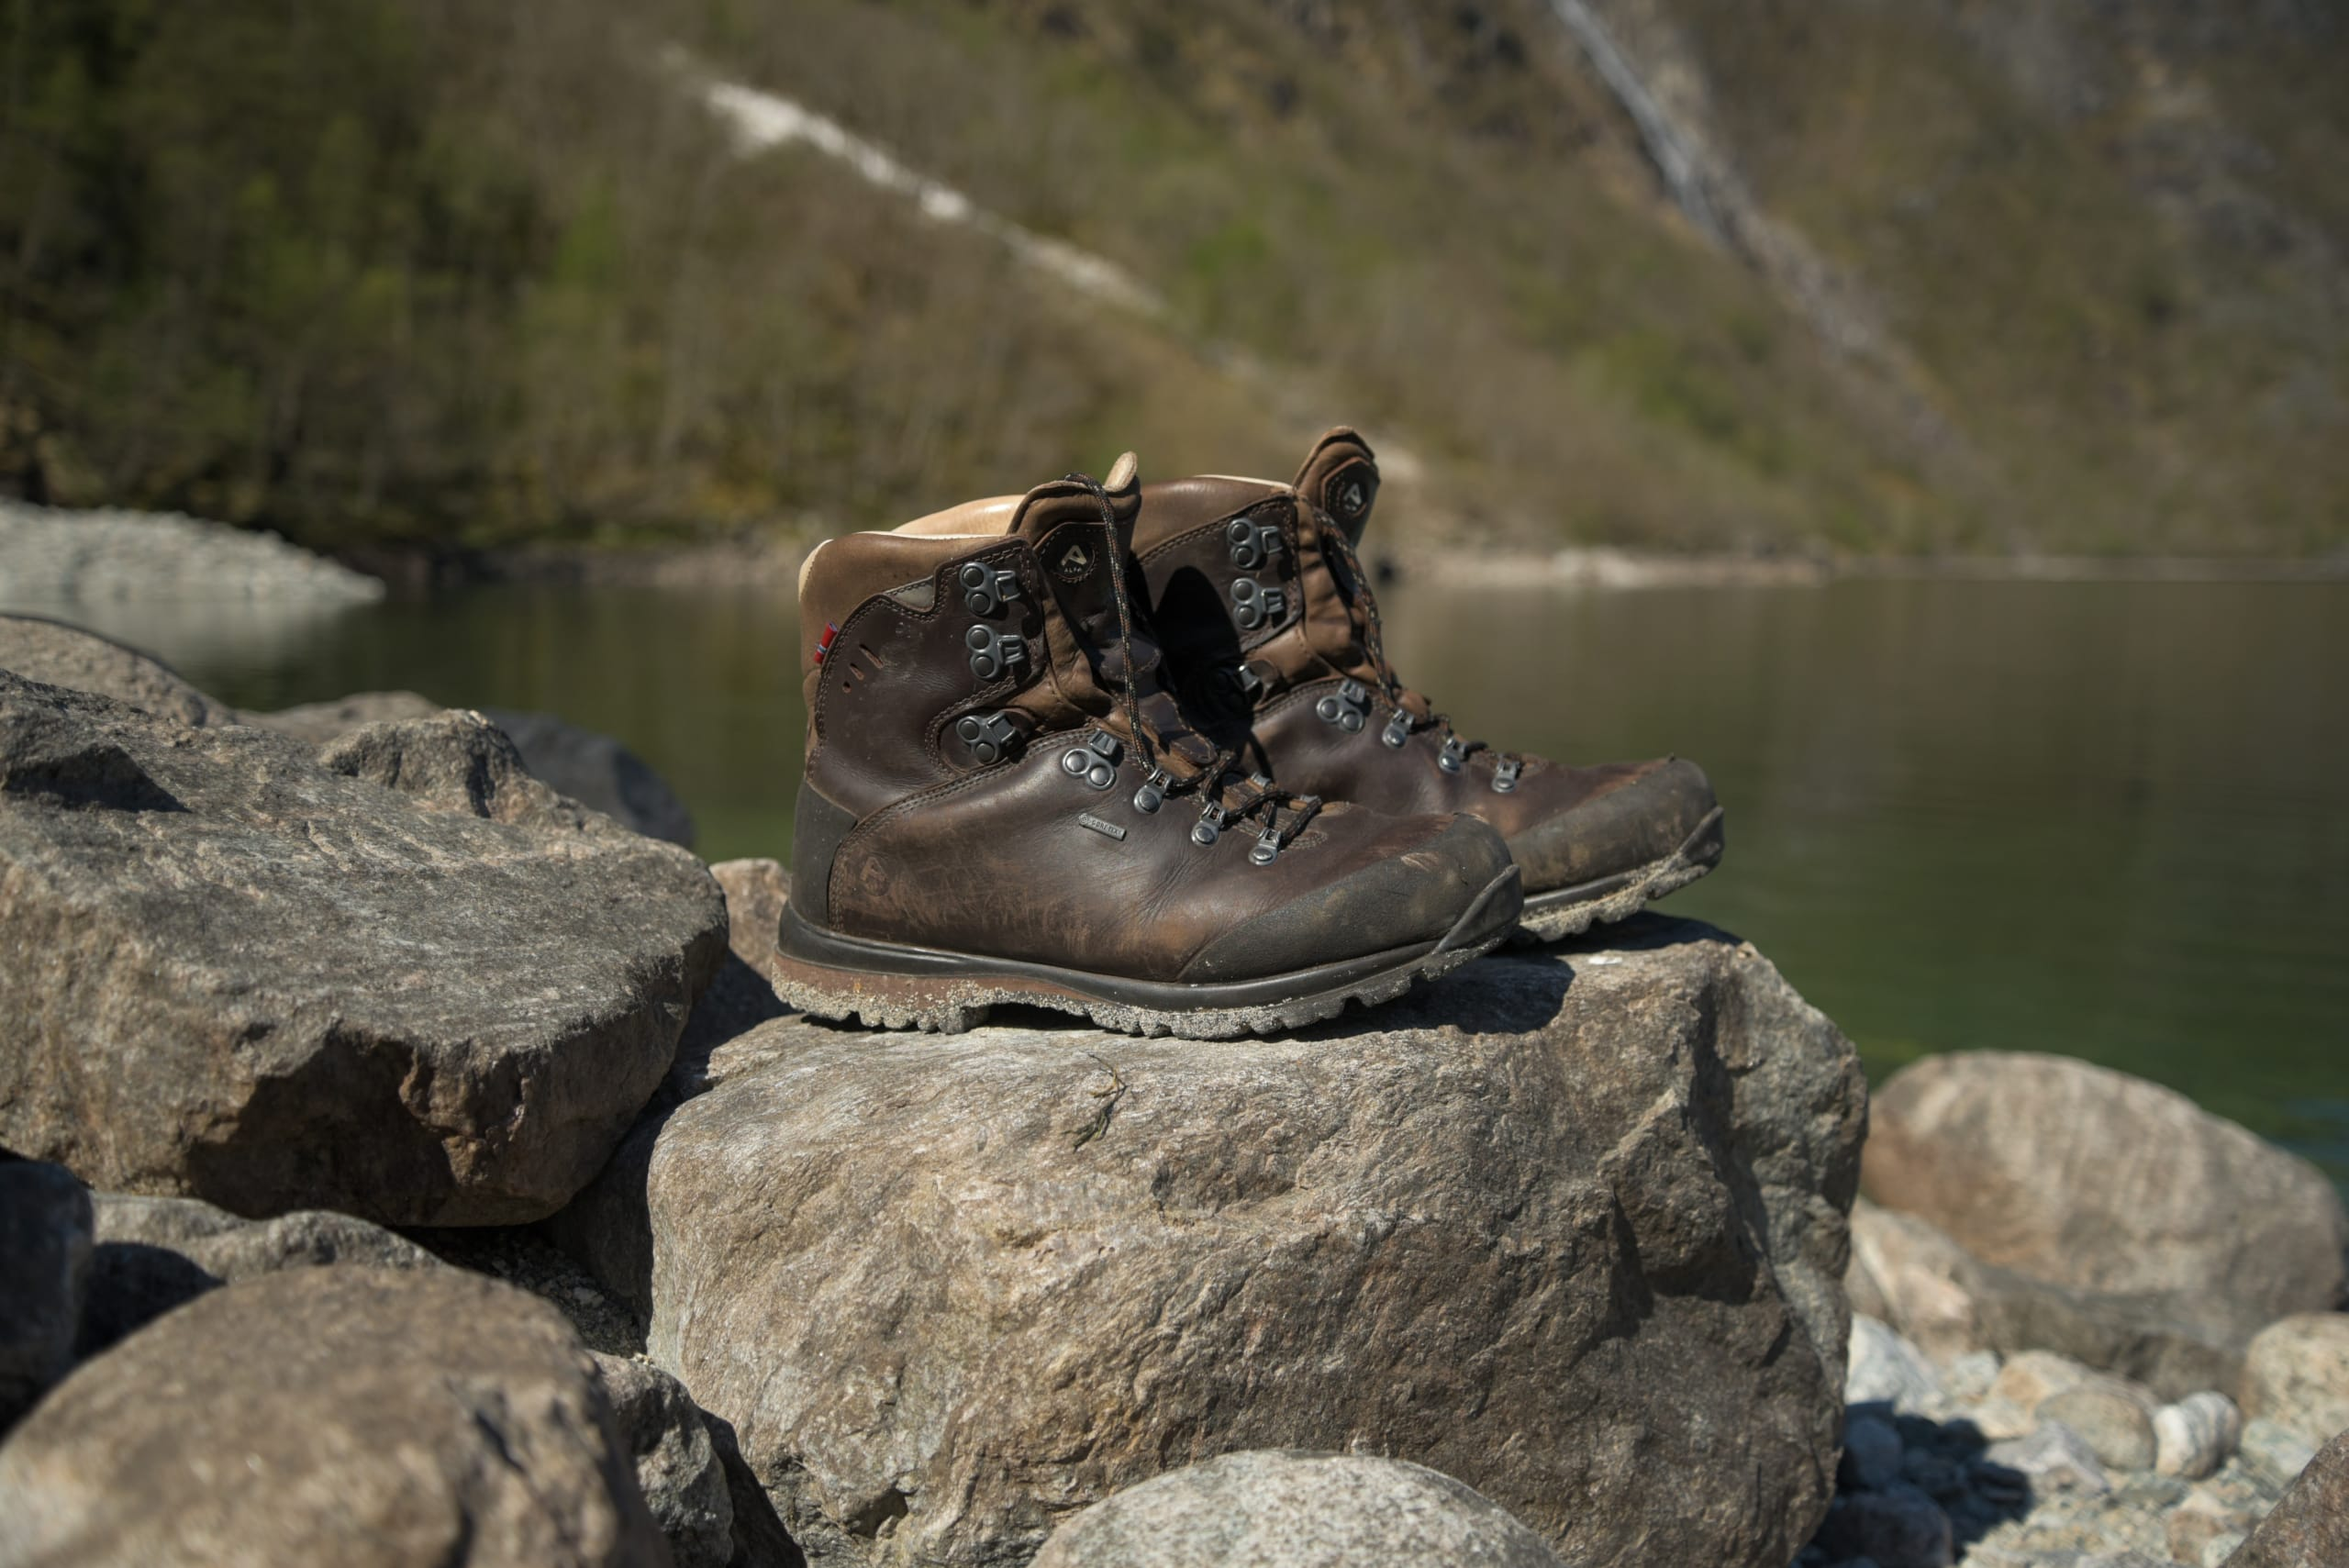 mountain boots on a rock close to a lake